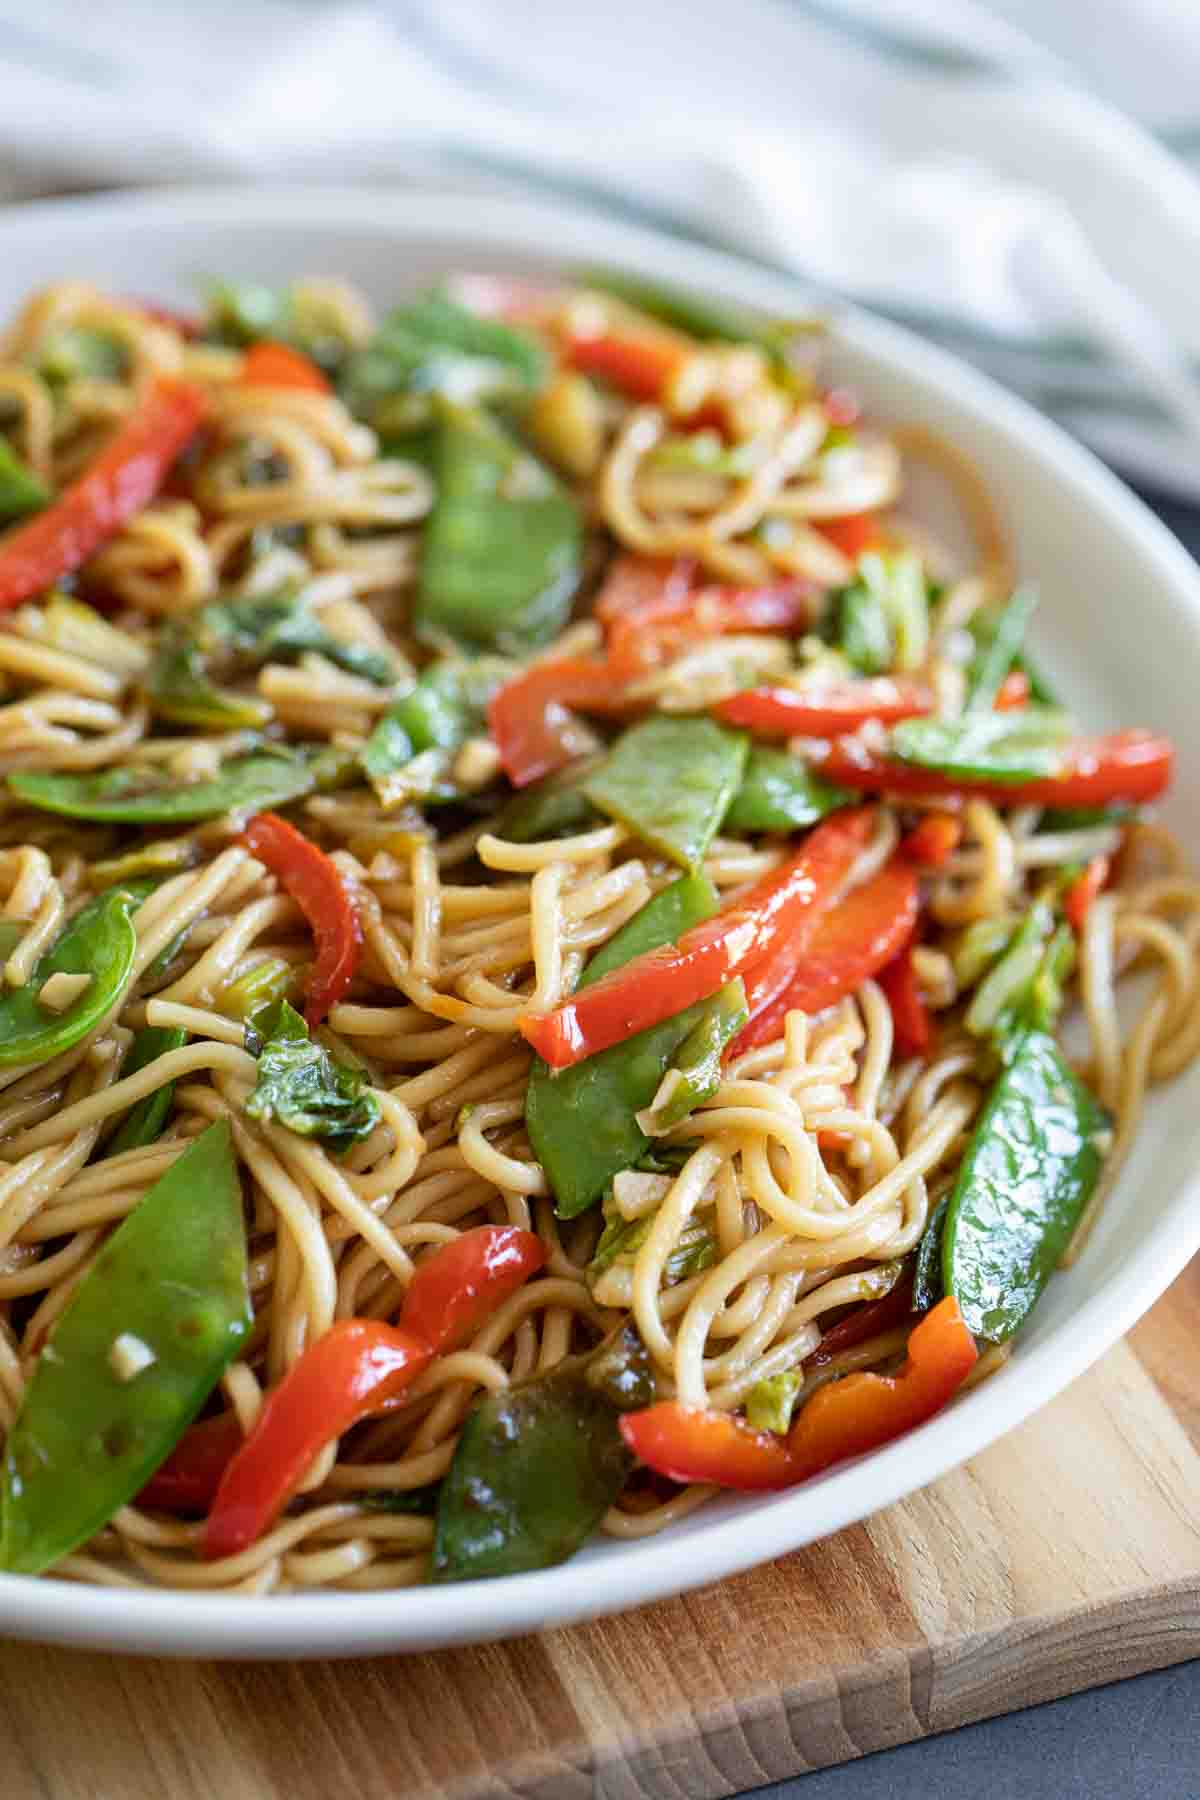 dish with lo mein noodles with cabbage, peas and peppers